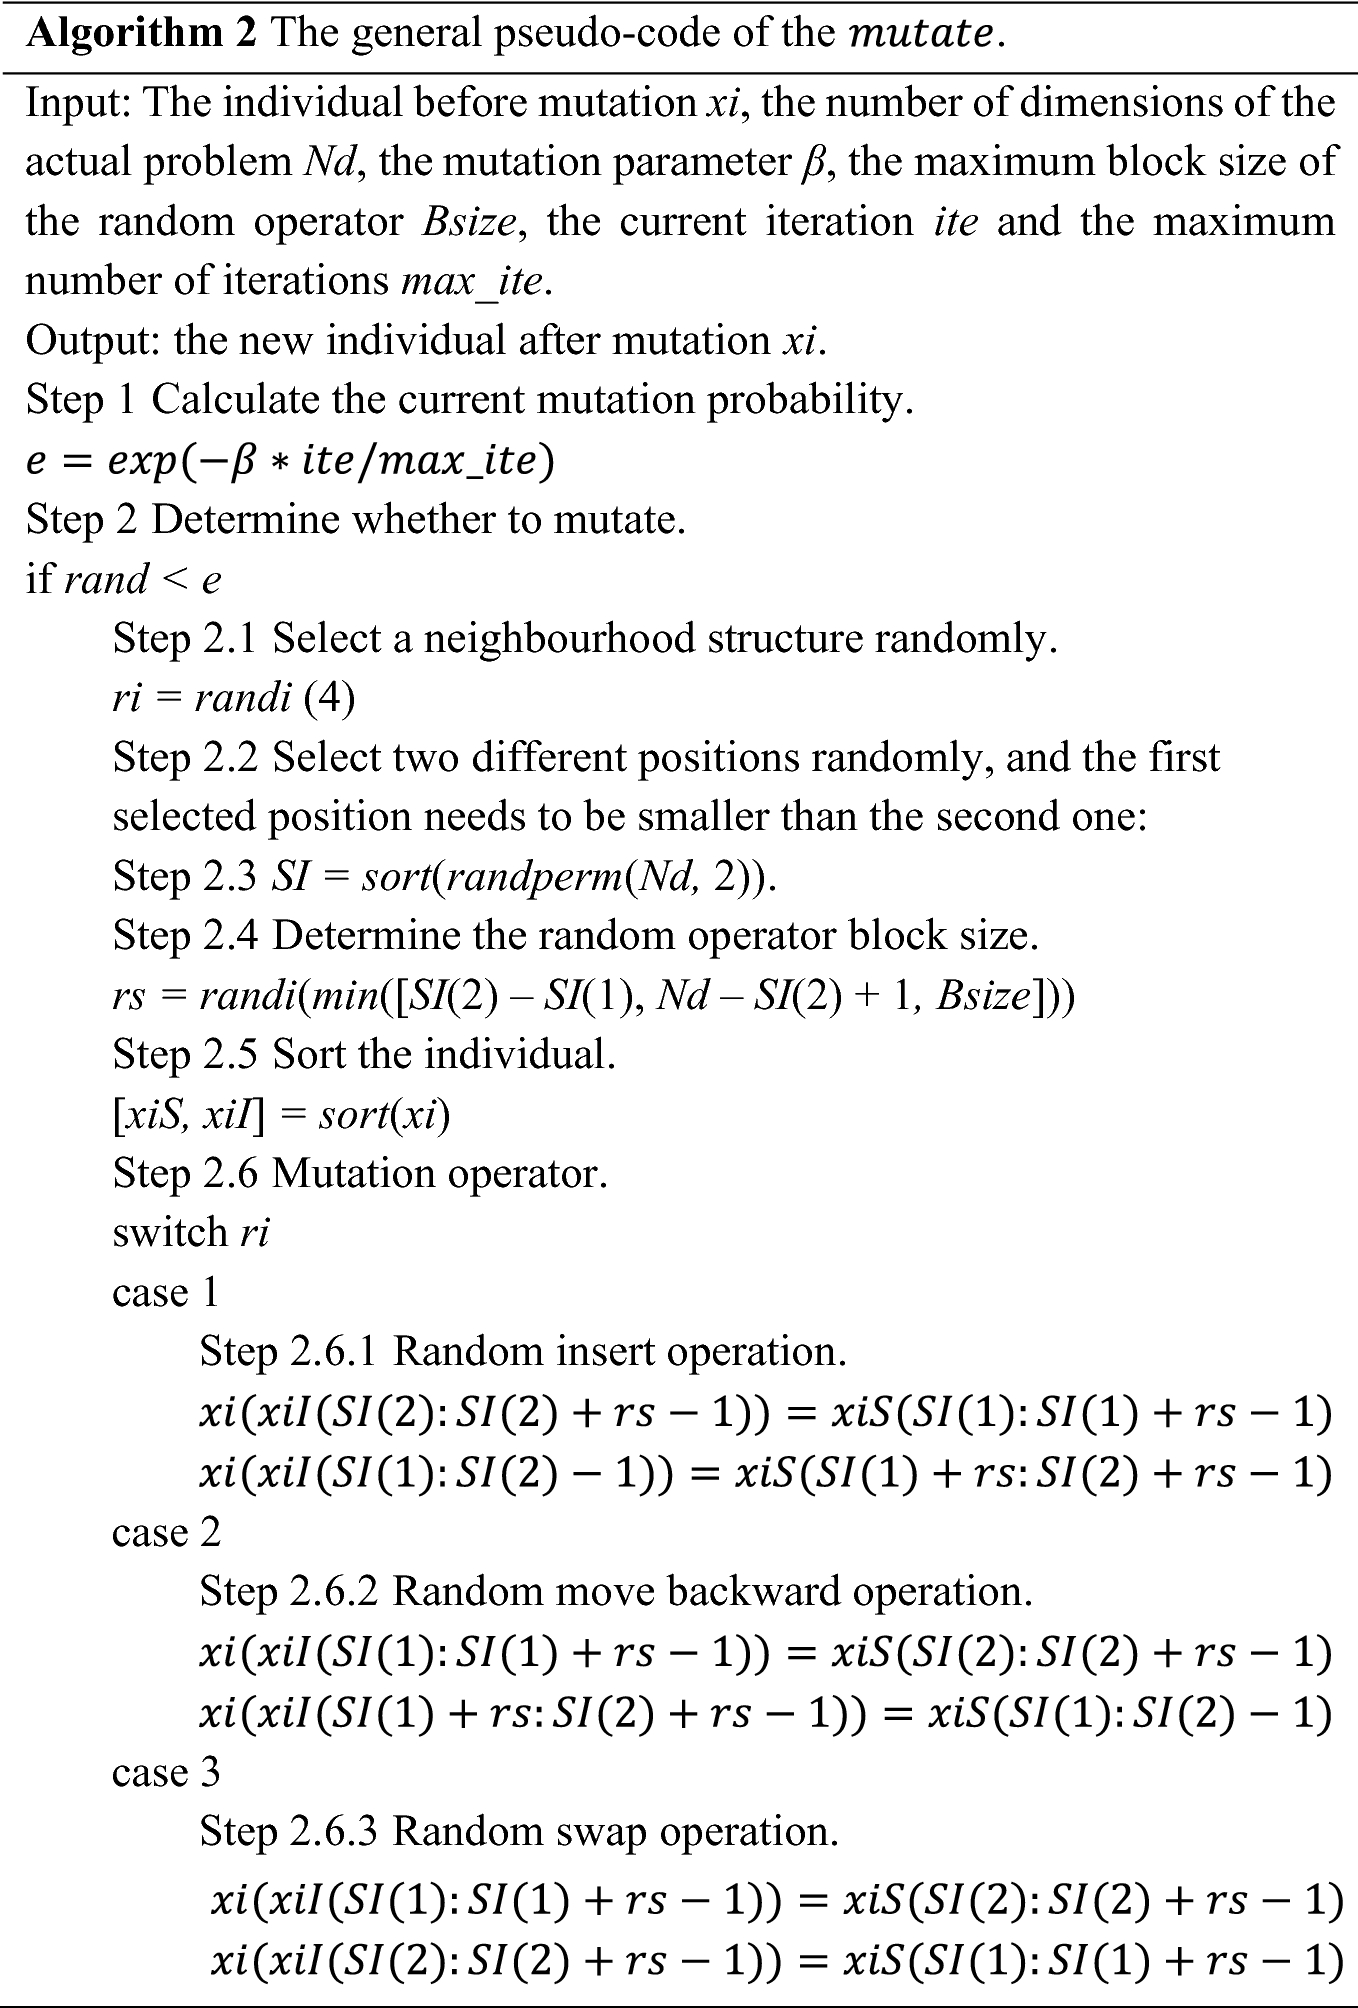 Use of a Simulation Environment and Metaheuristic Algorithm